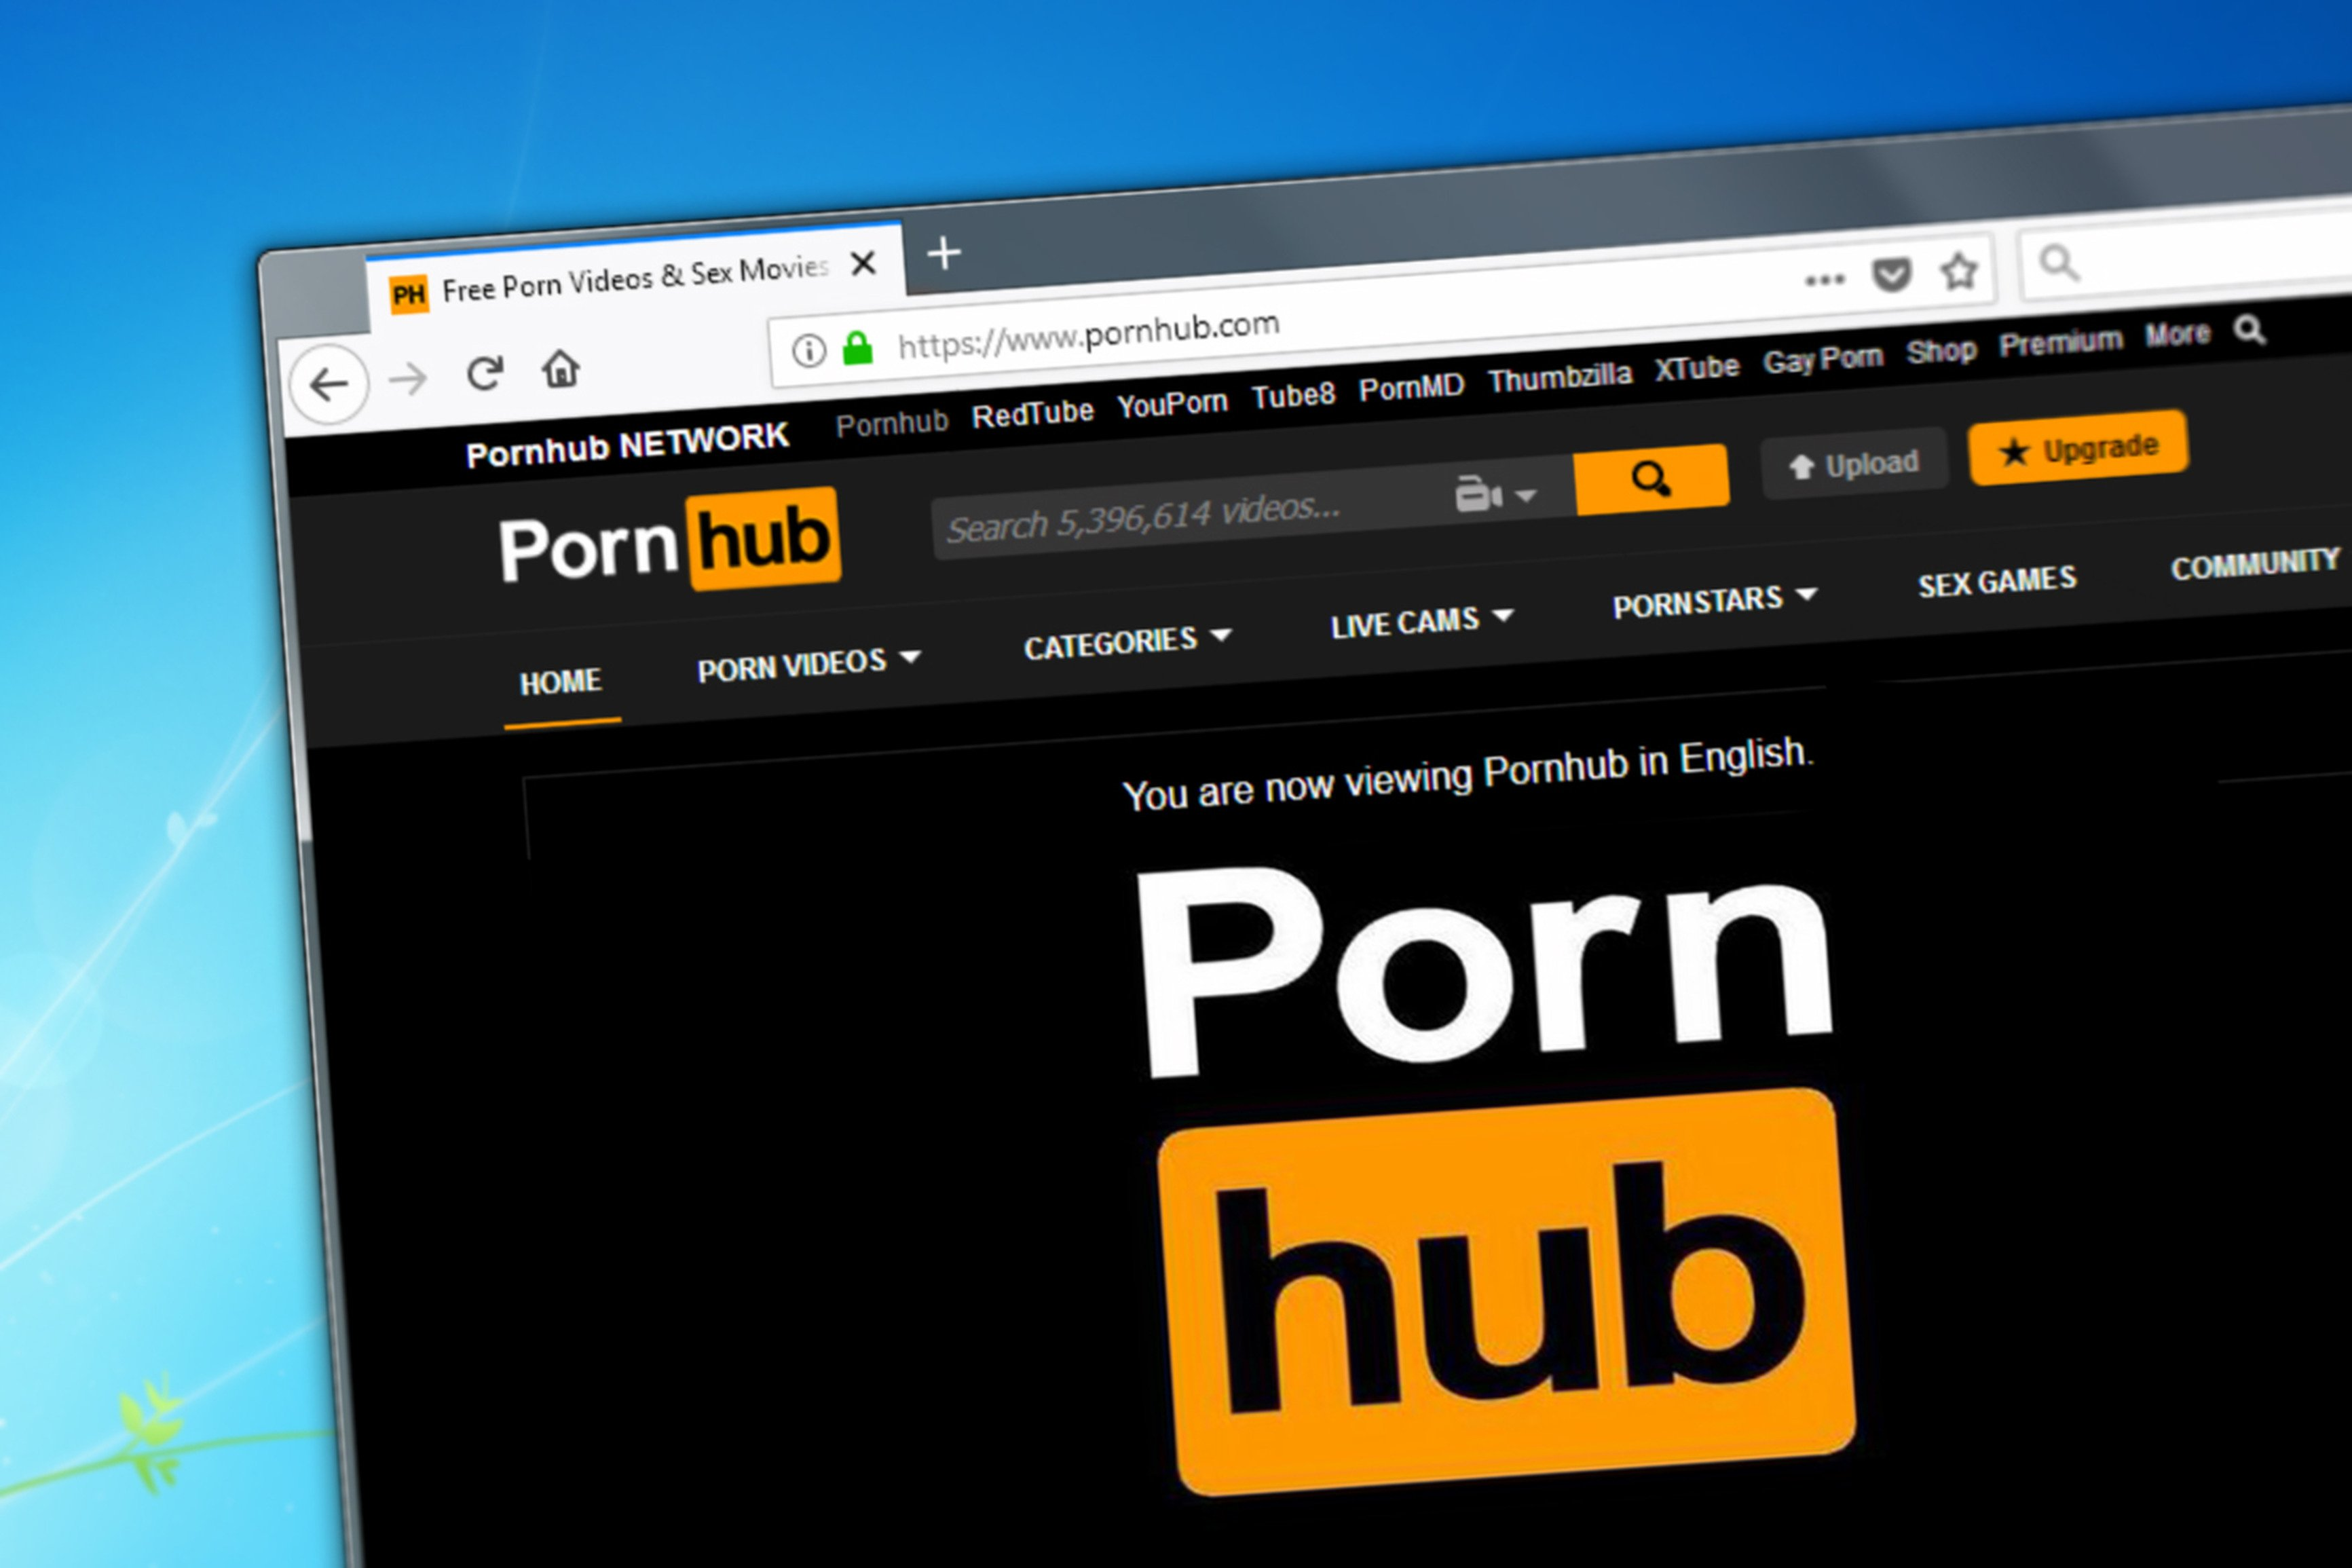 A page on the Pornhub website. (Shutterstock)